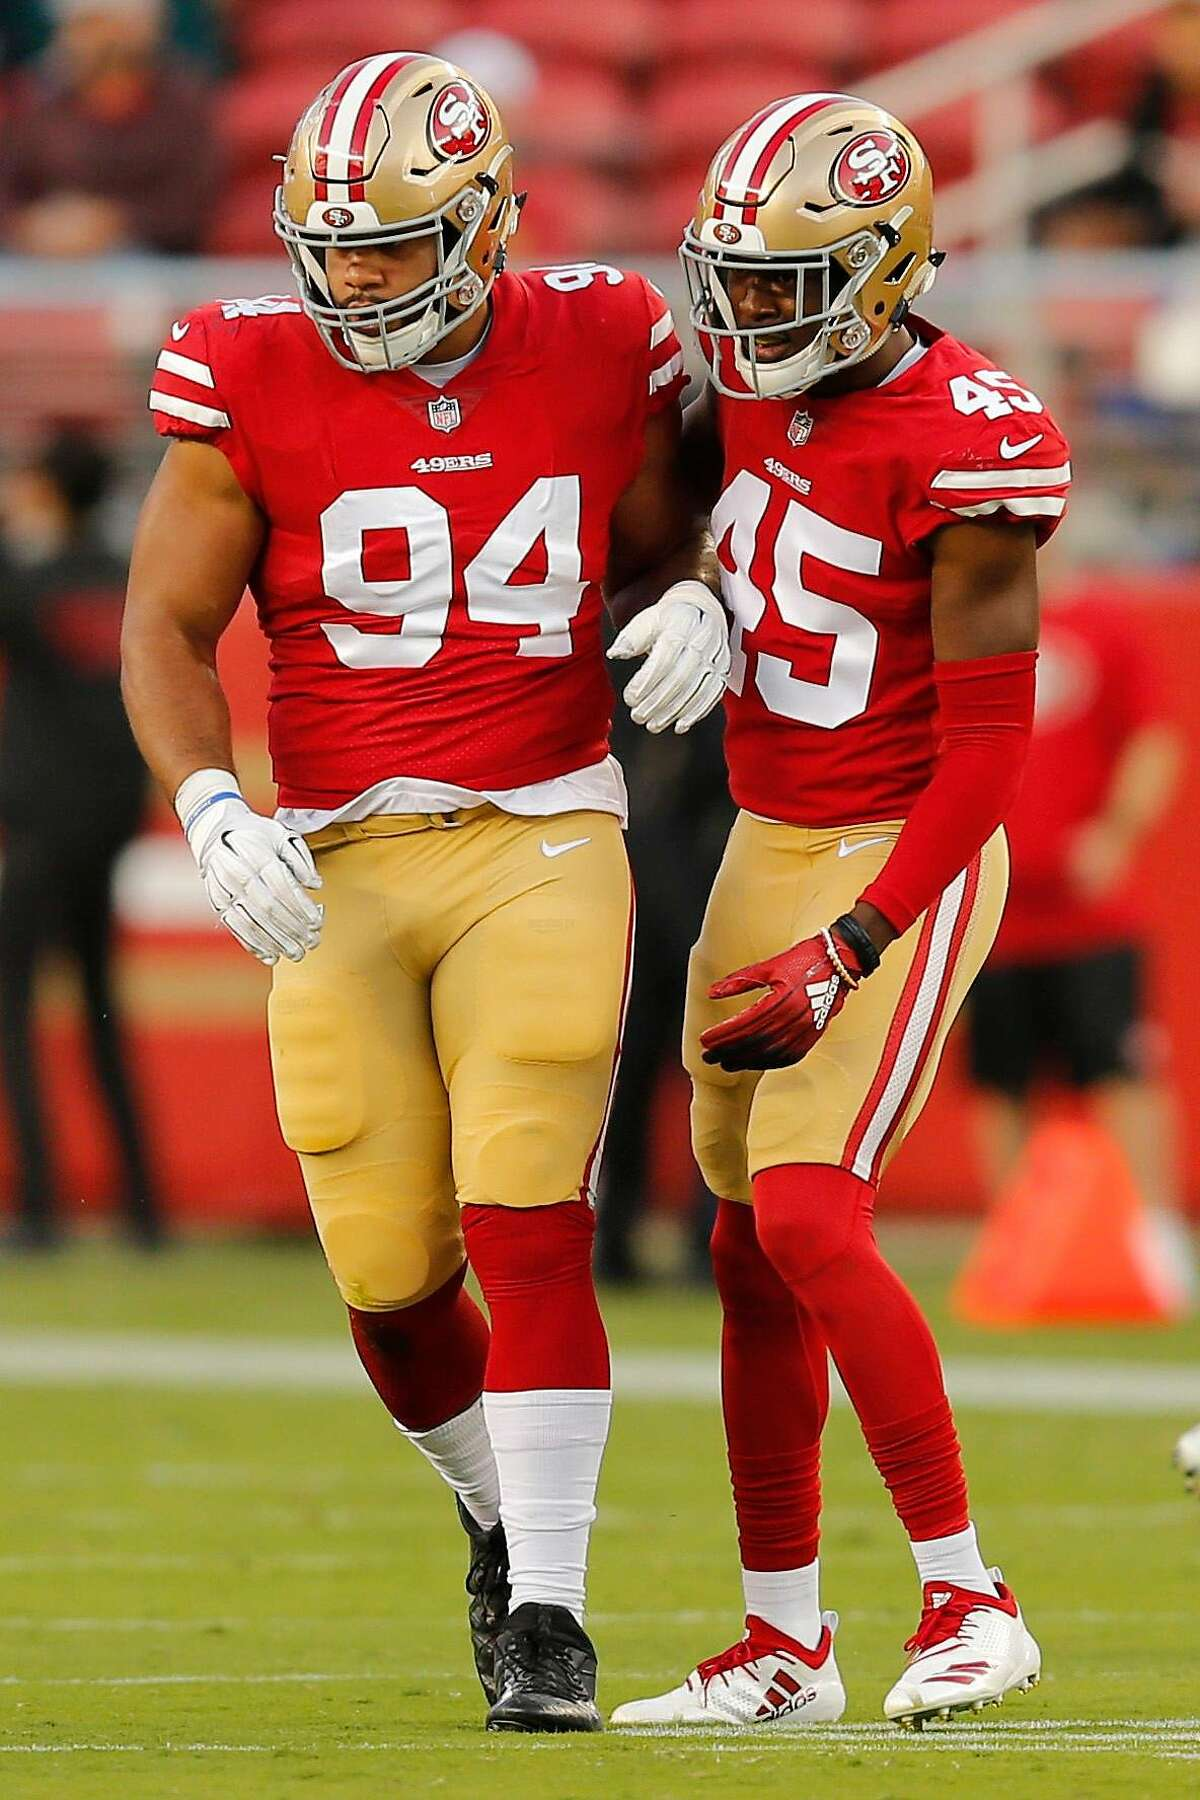 San Francisco 49ers defensive end Solomon Thomas (94) and defensive back Tarvarius Moore (45) during an NFL game against the Los Angeles Chargers at Levi's Stadium on Thursday, Aug. 30, 2018, in Santa Clara, Calif.